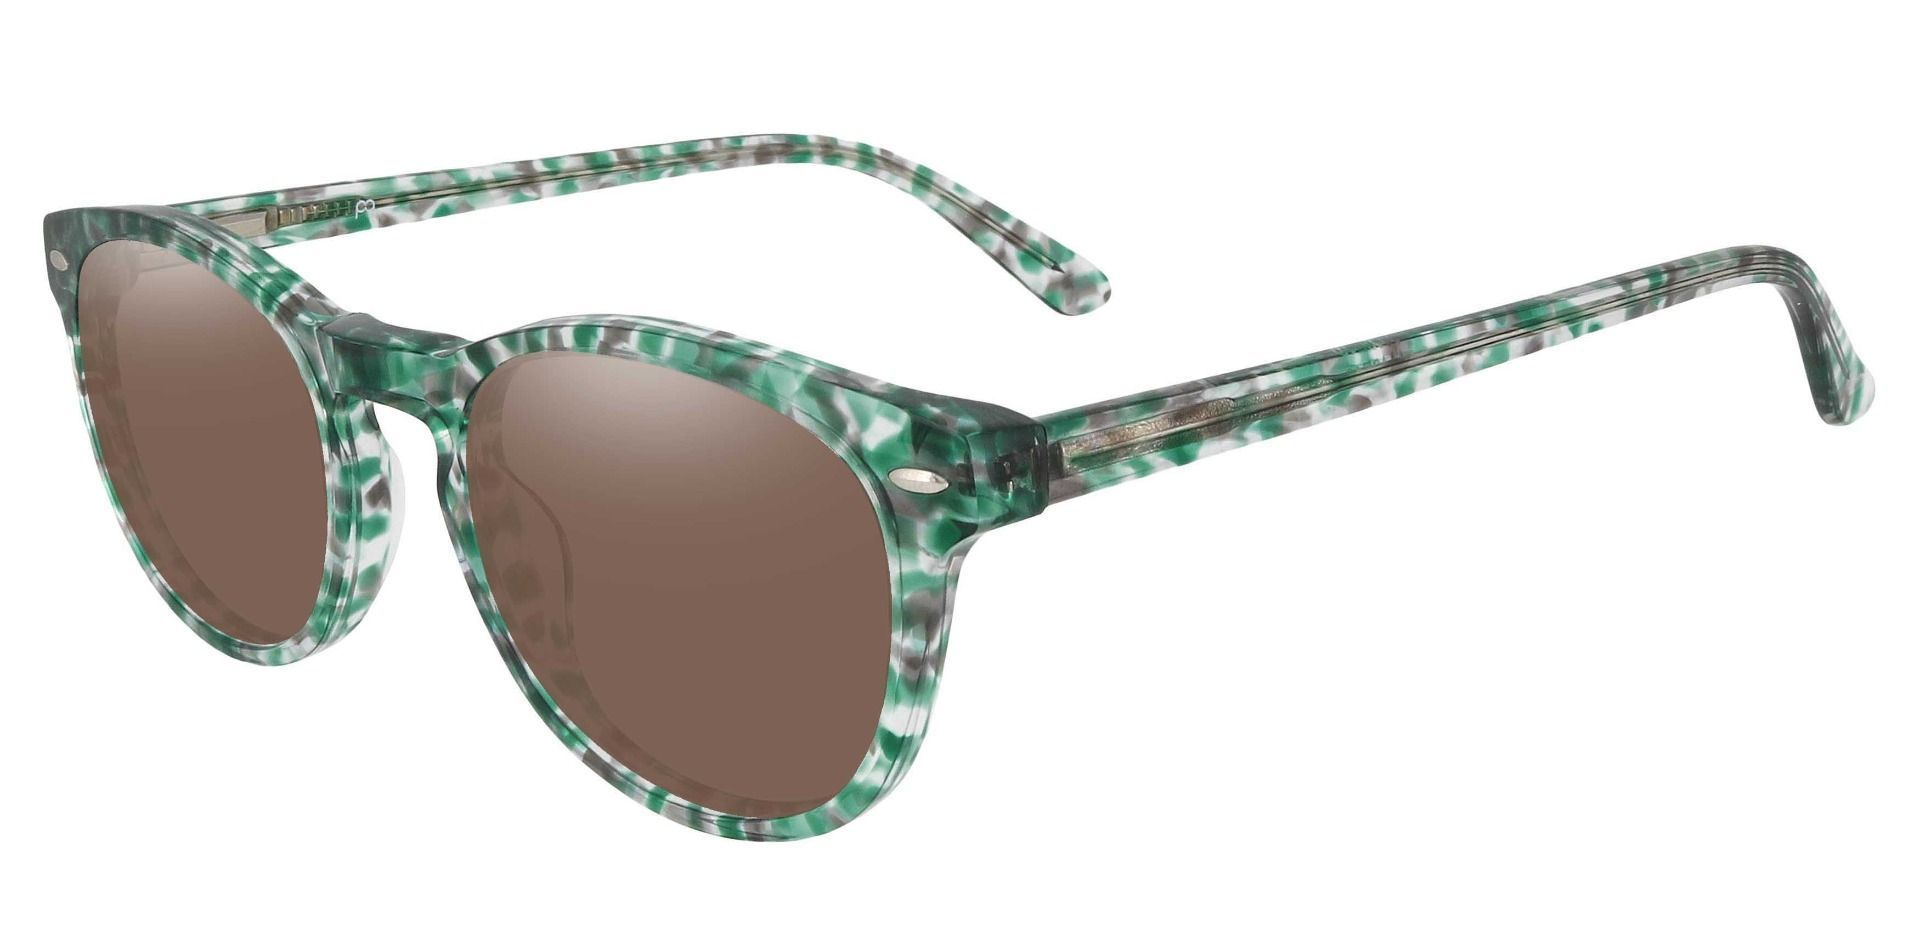 Laguna Oval Lined Bifocal Sunglasses - Green Frame With Brown Lenses